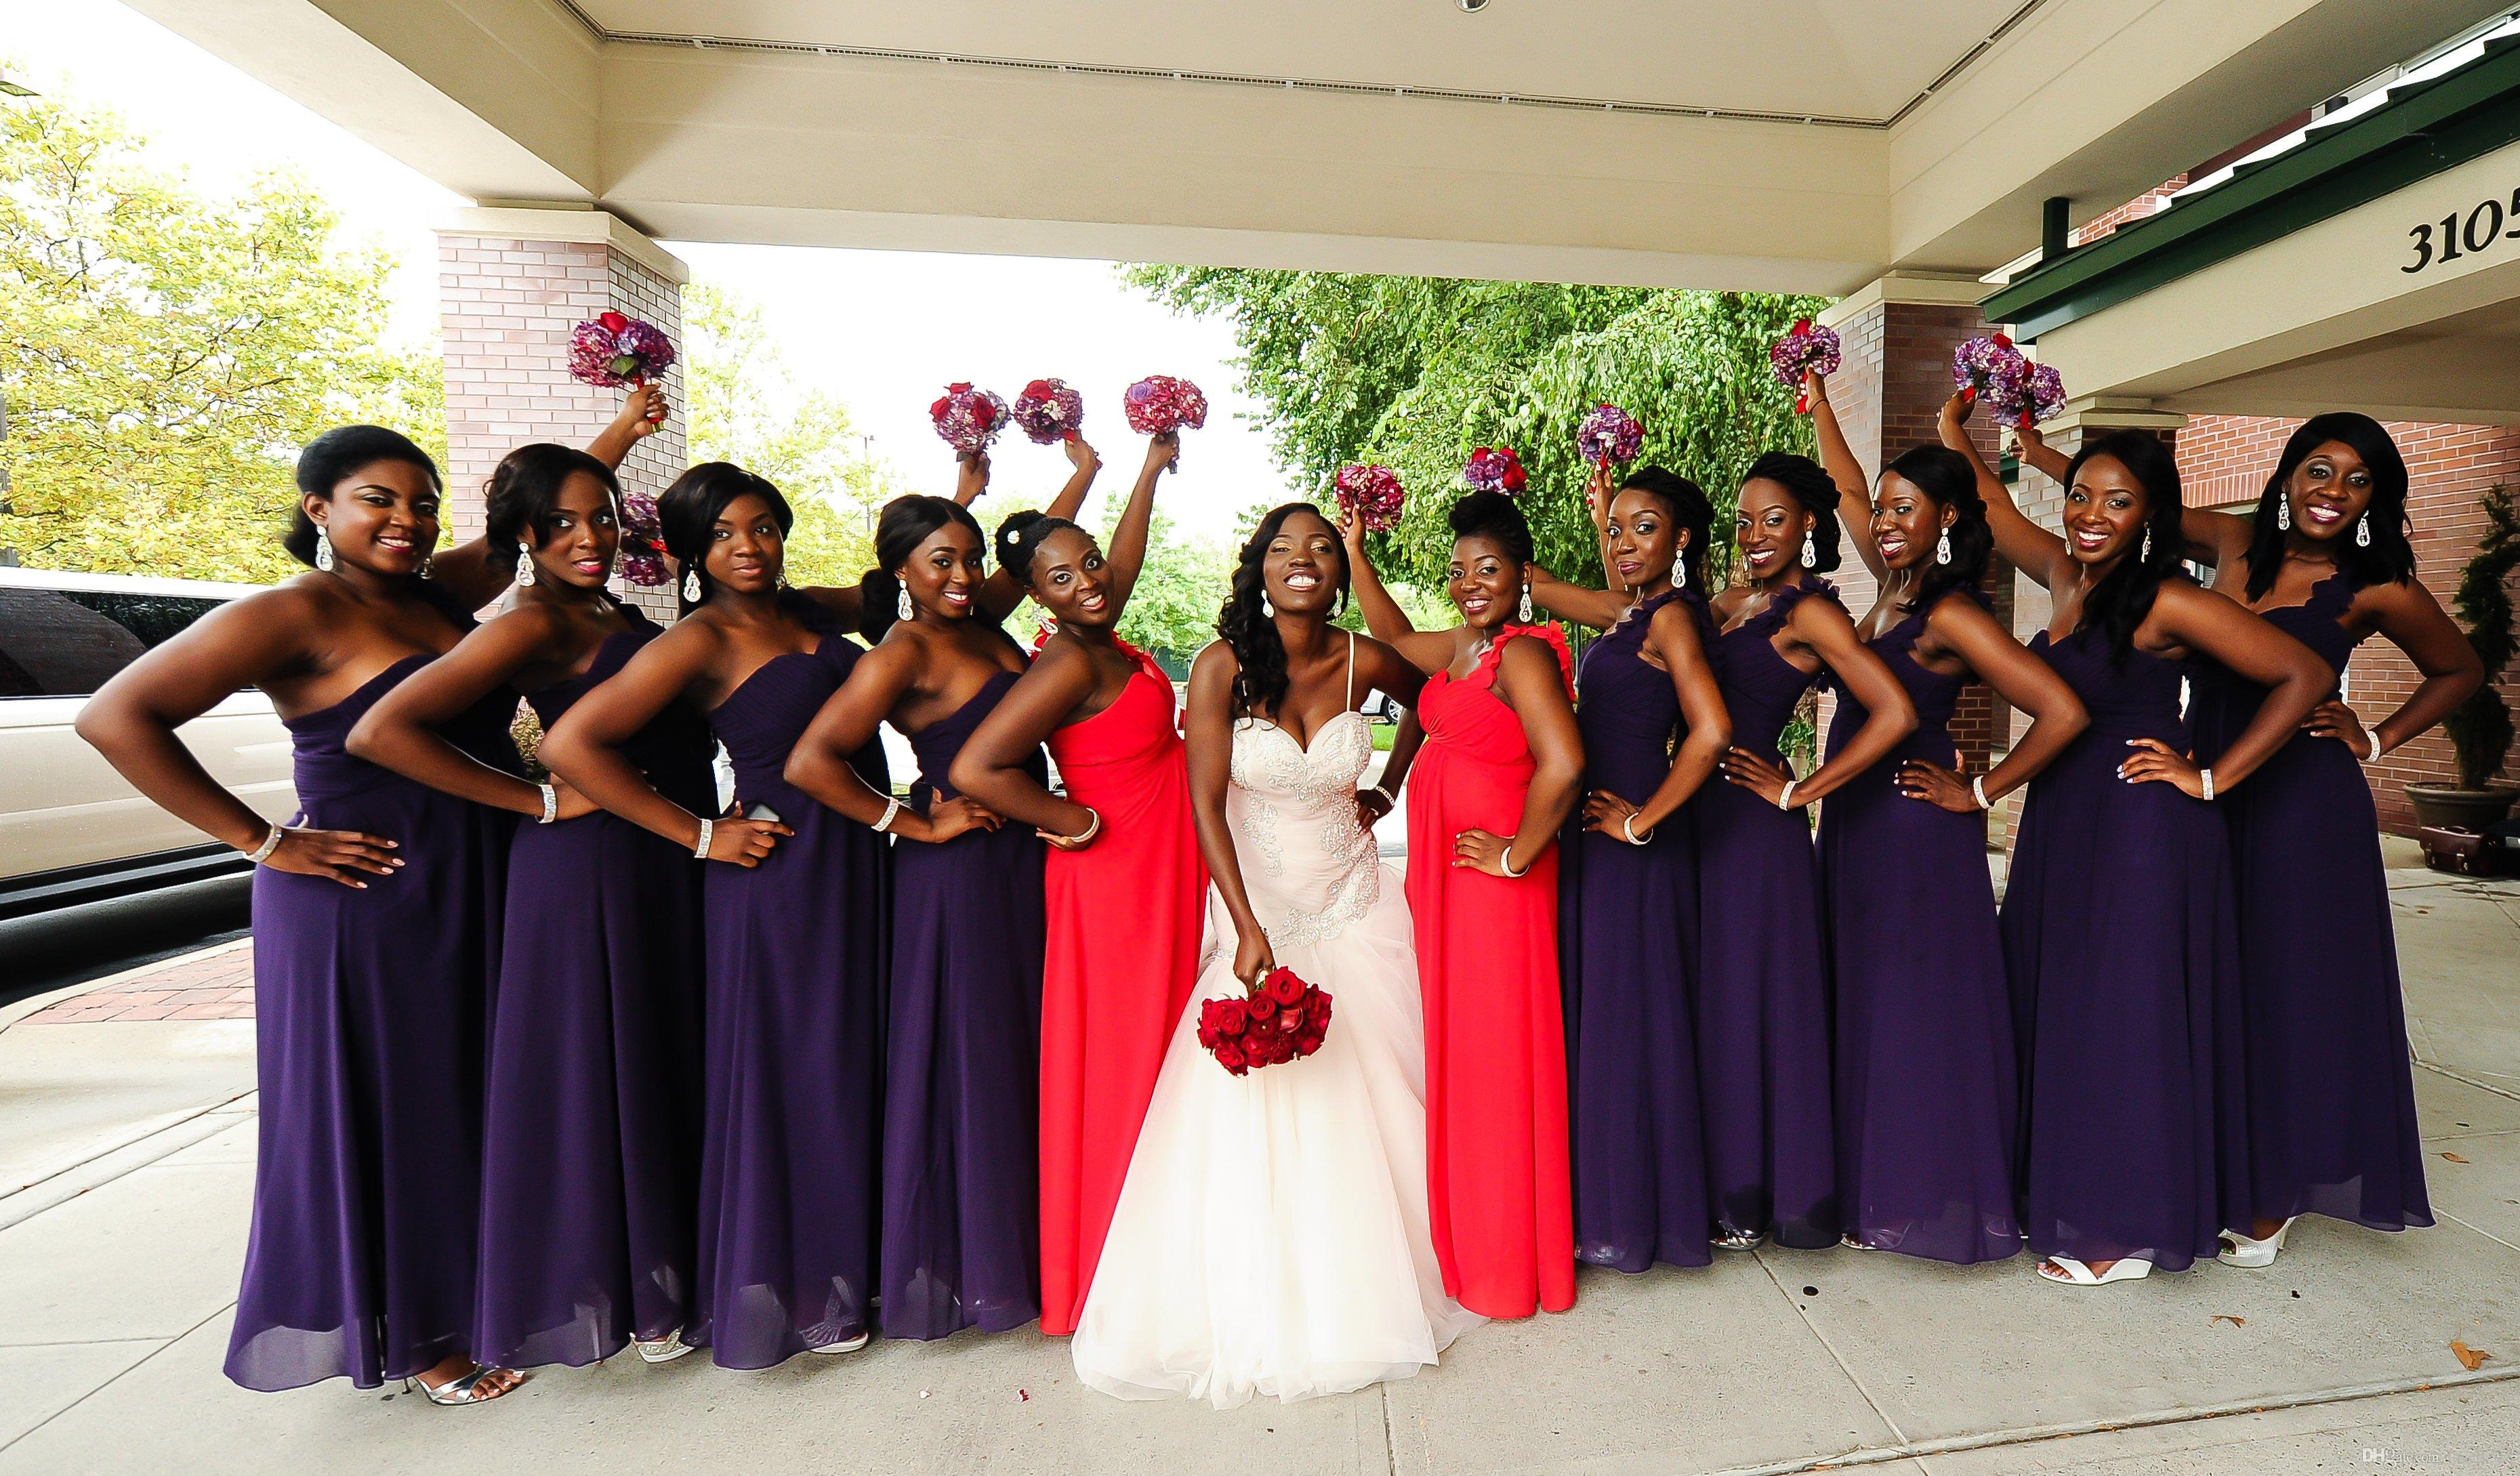 Nigerian purple bridesmaid dresses one shoulder ruffle wedding nigerian purple bridesmaid dresses one shoulder ruffle wedding party dresses long floor length arabic plus size dresses a line mermaid bridesmaid dresses ombrellifo Images